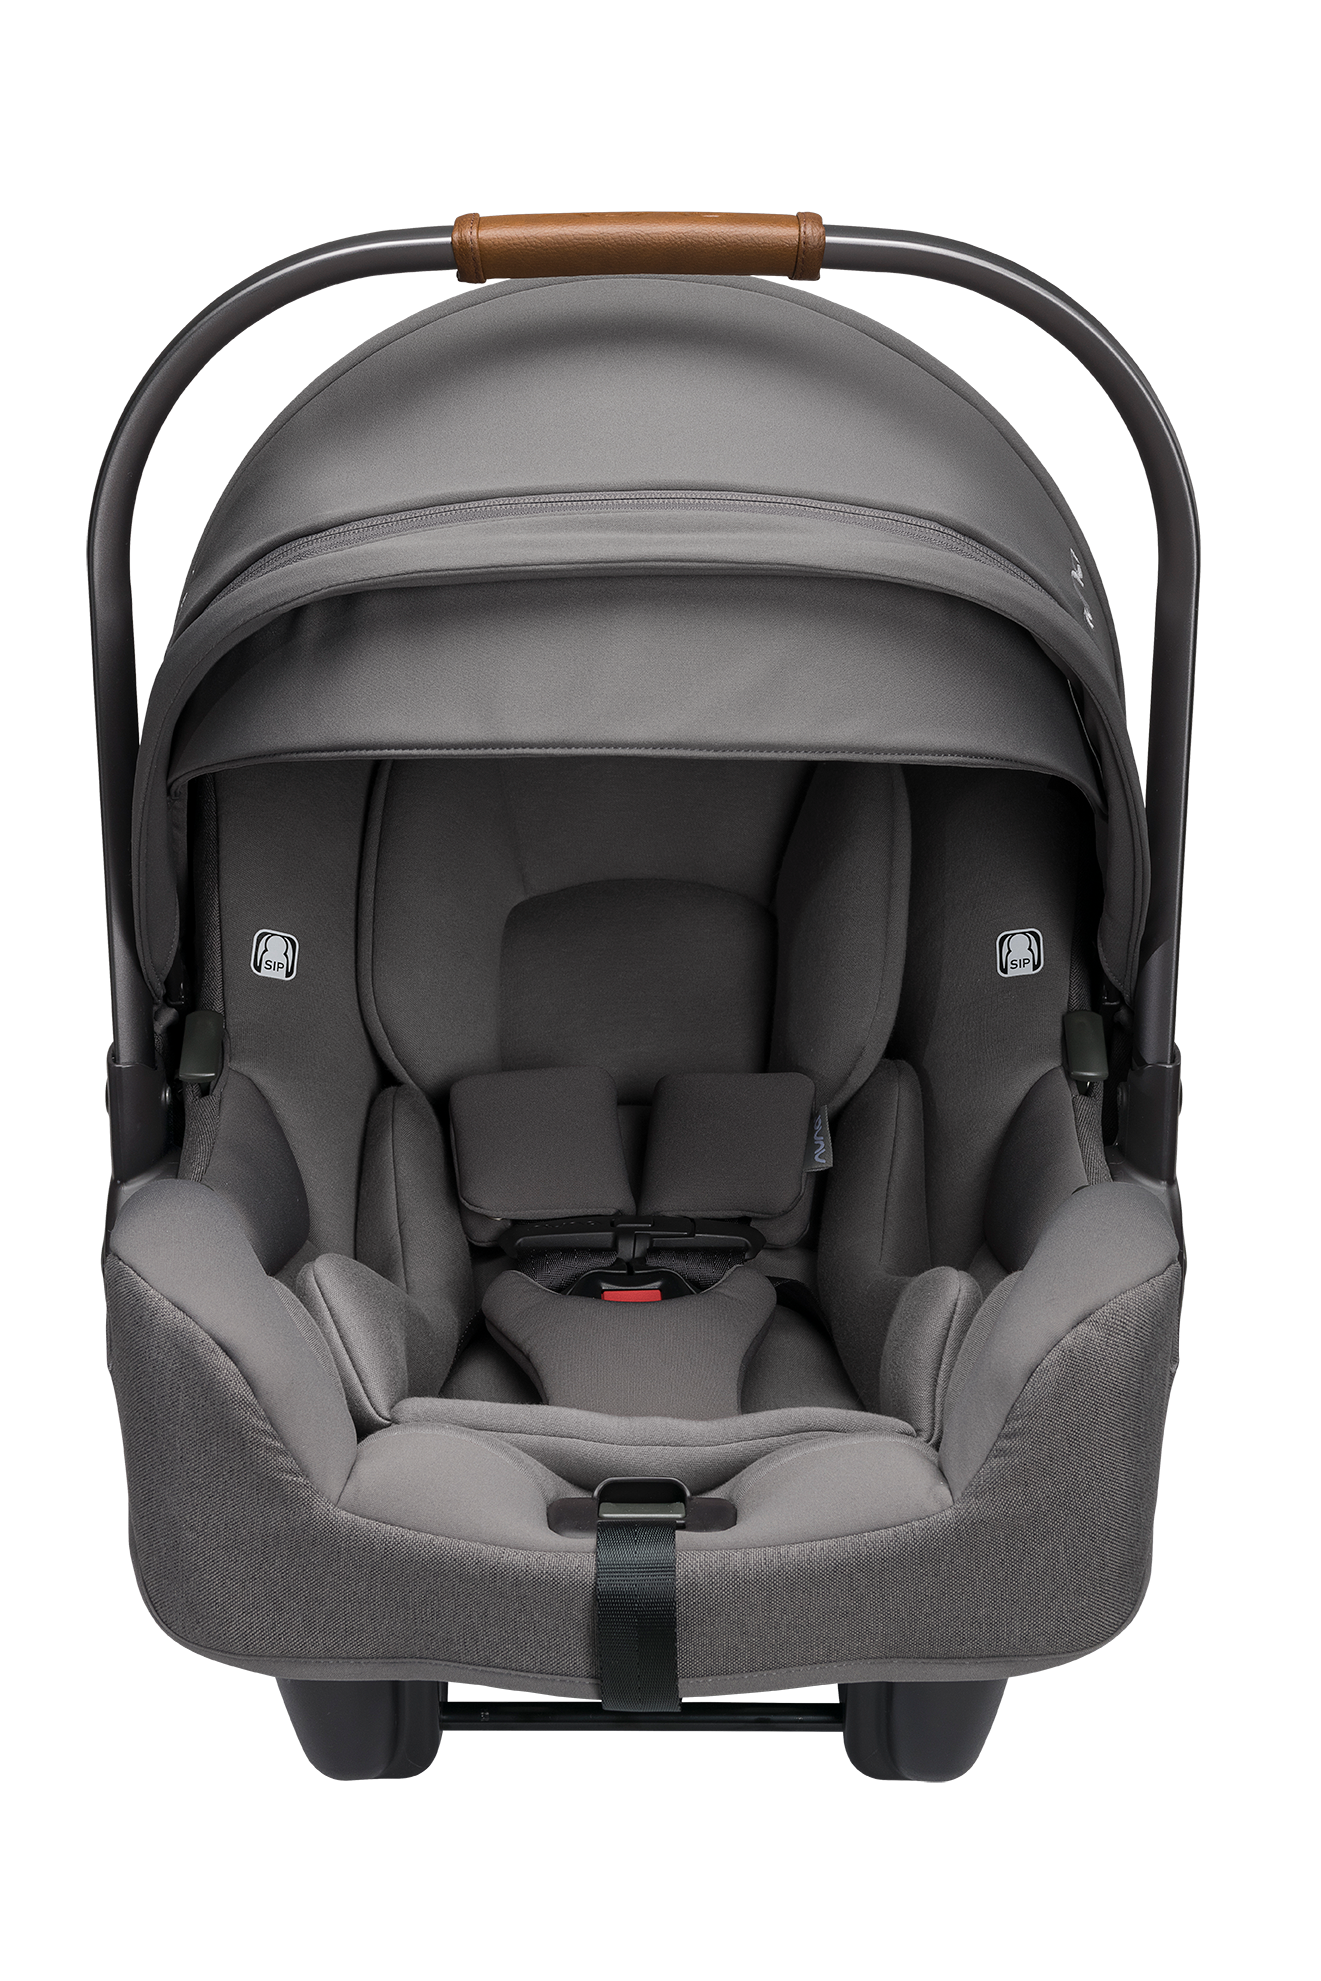 Nuna Pipa Rx Infant Car Seat In Granite Shop The Lightest Car Seat On The Market At Sugarbabies